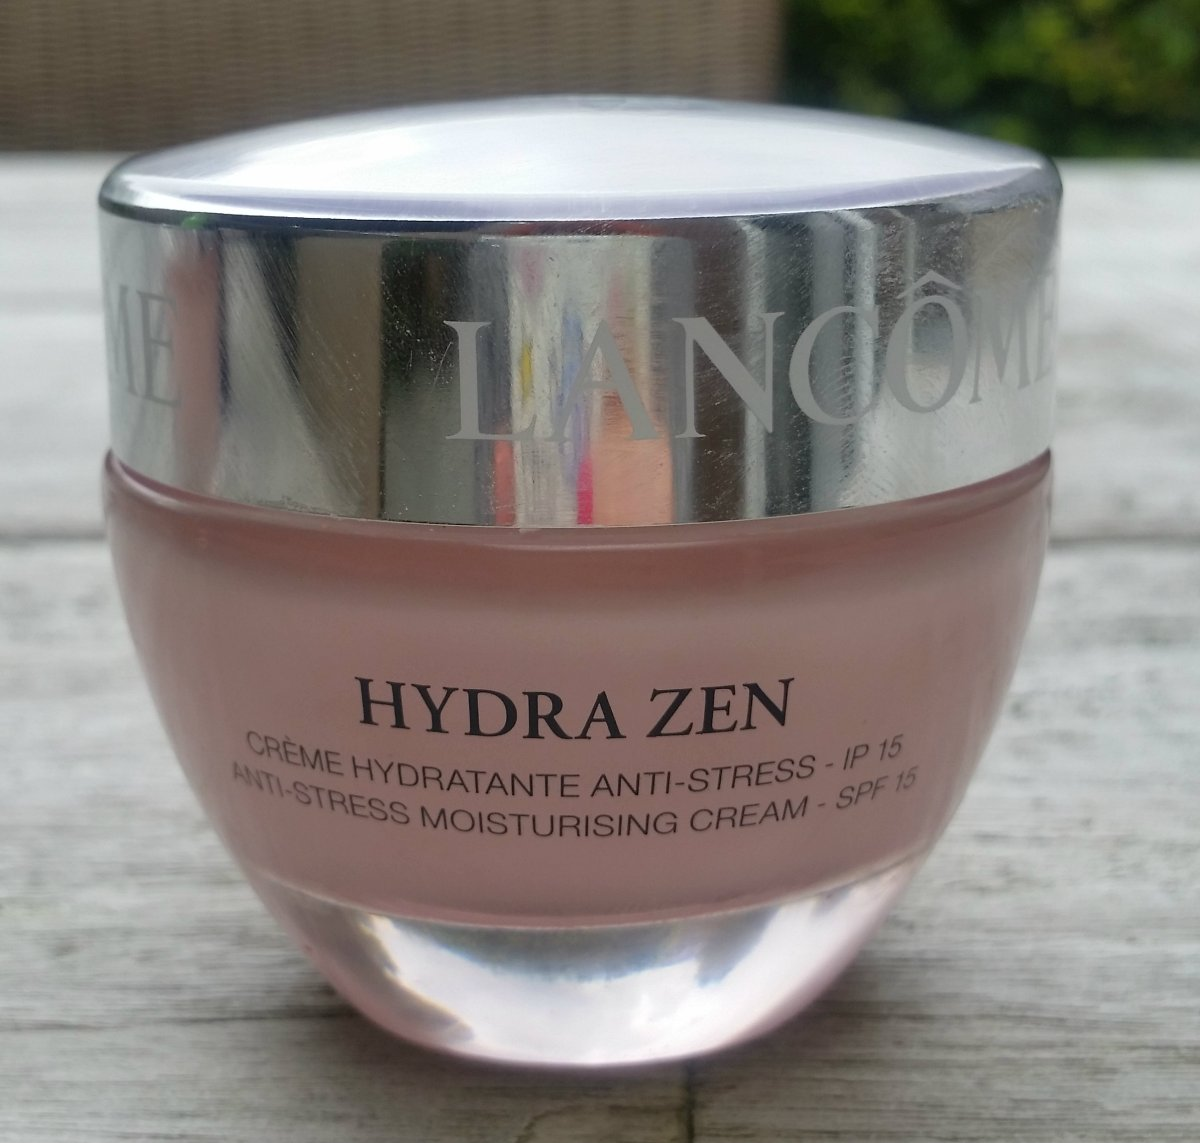 Review: Lancôme Hydra Zen Day cream